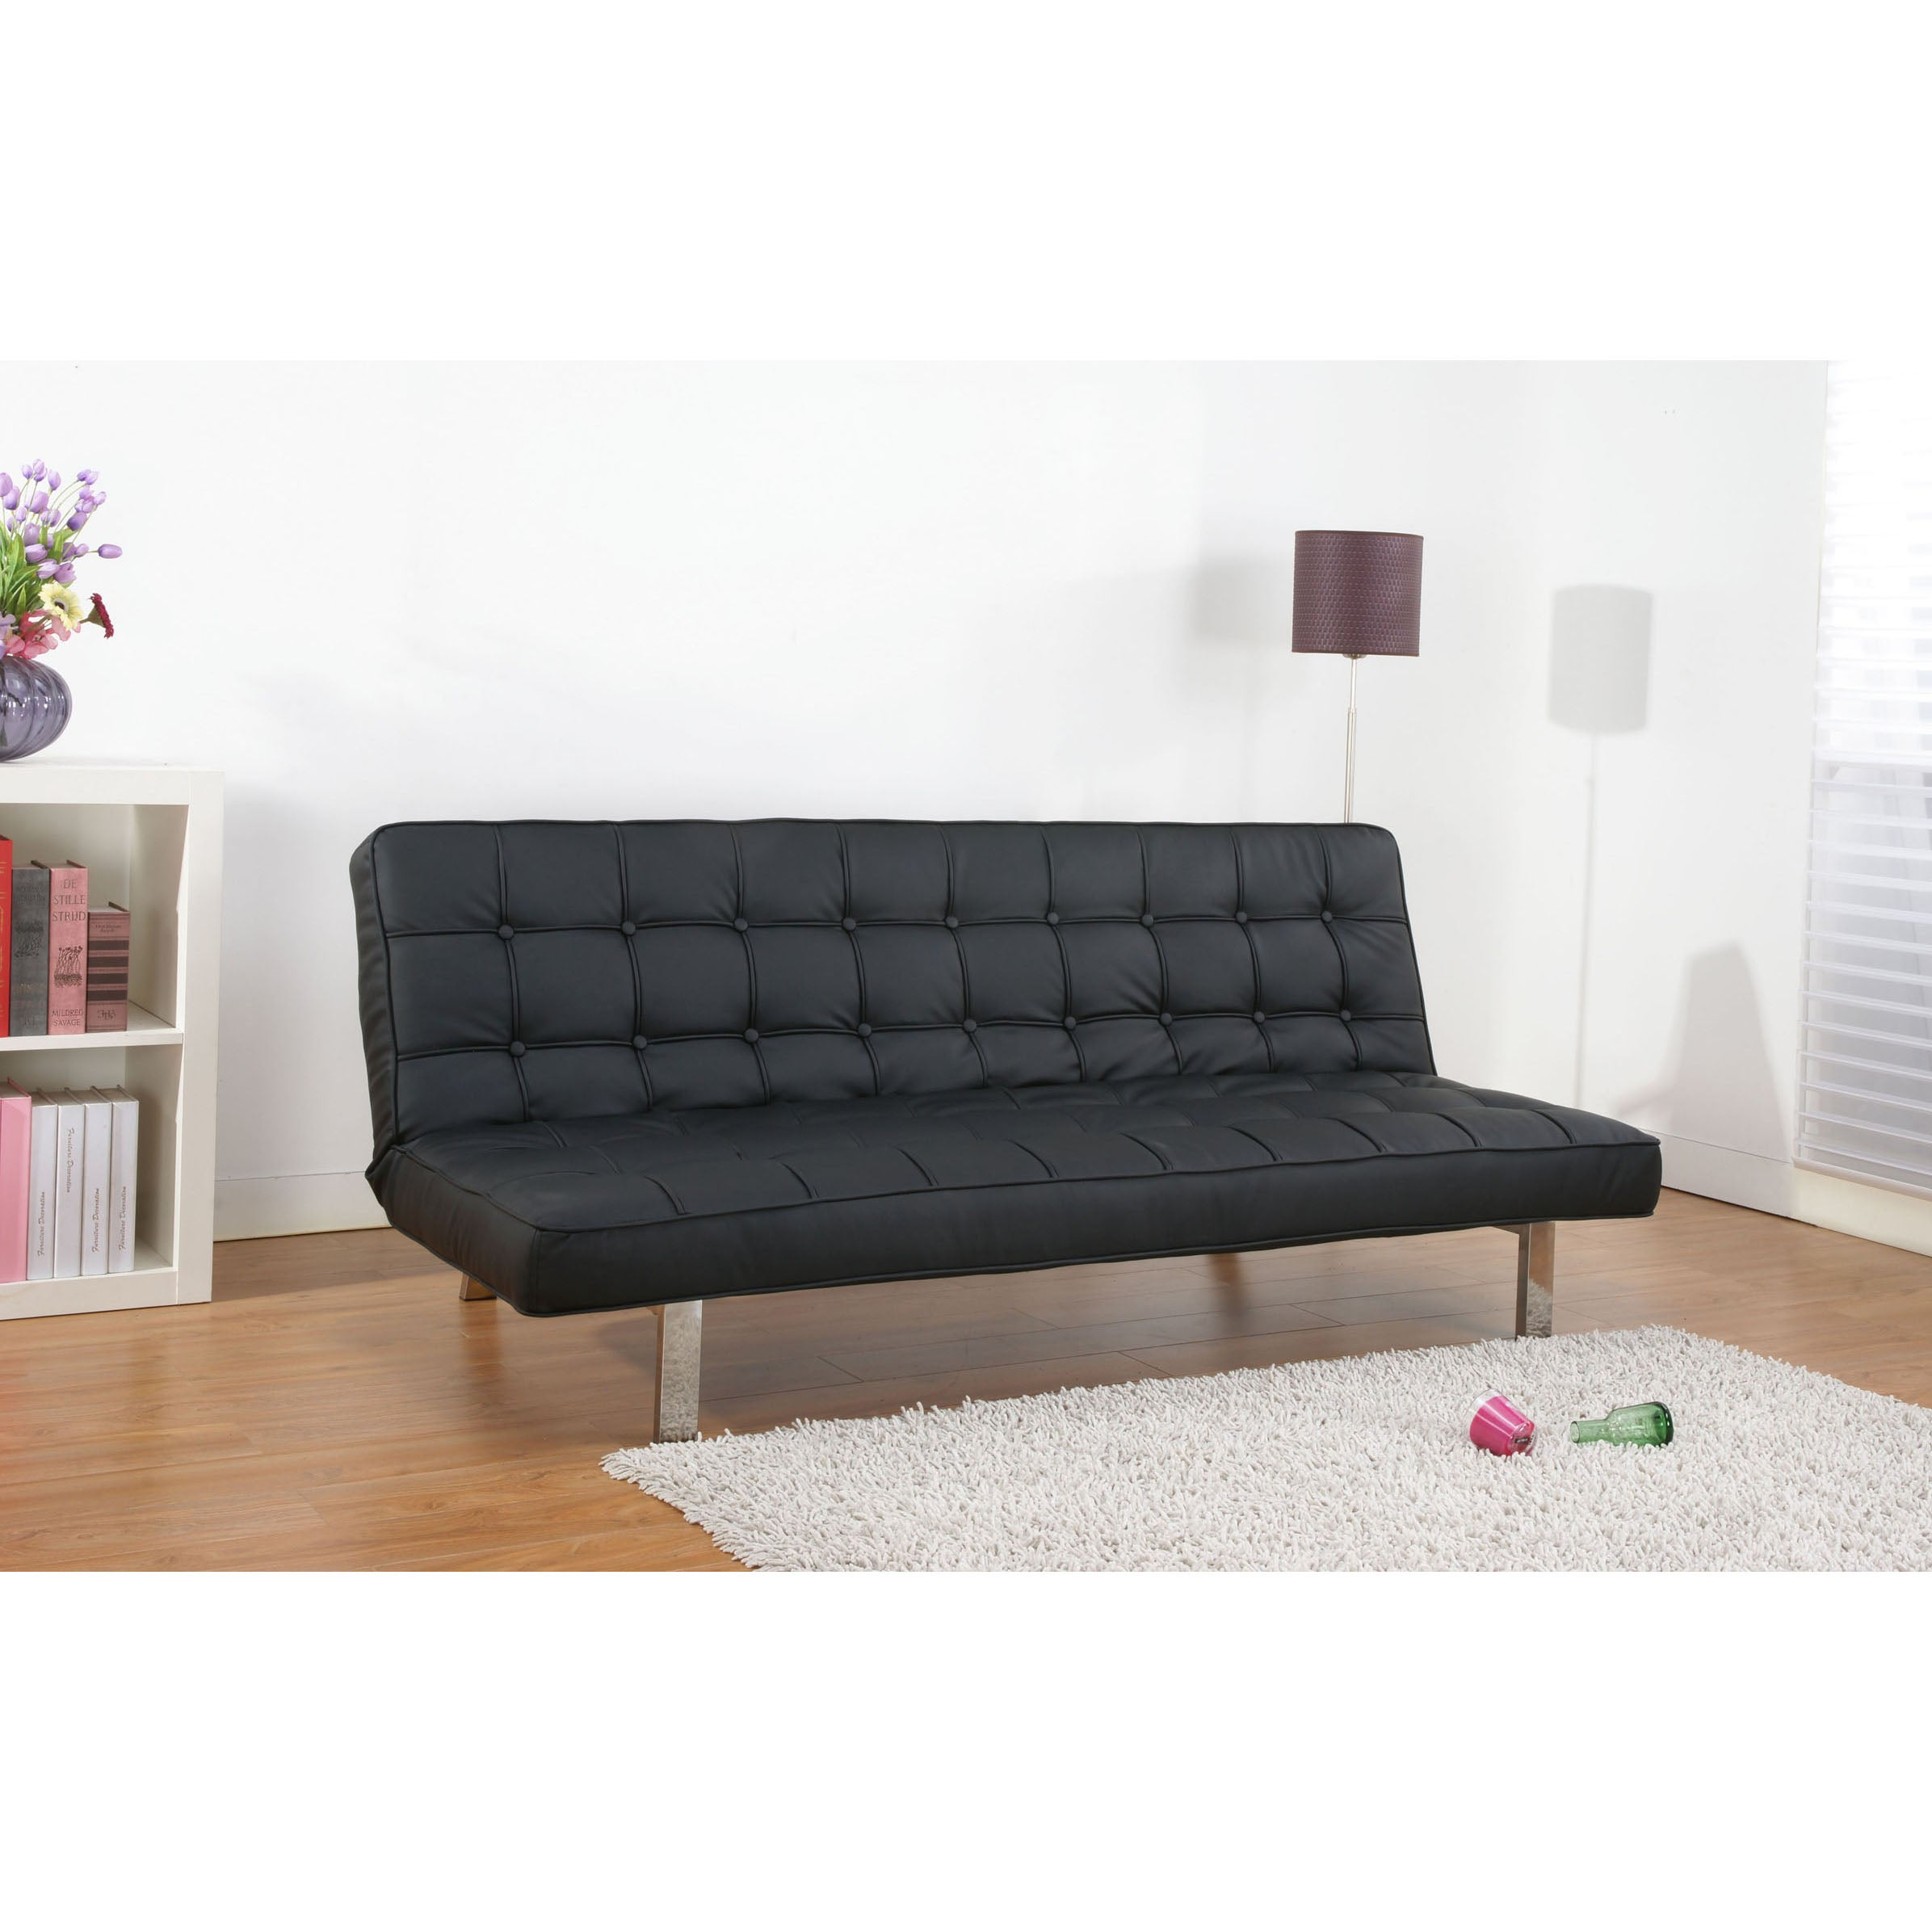 vegas black futon sofa bed overstock shopping great